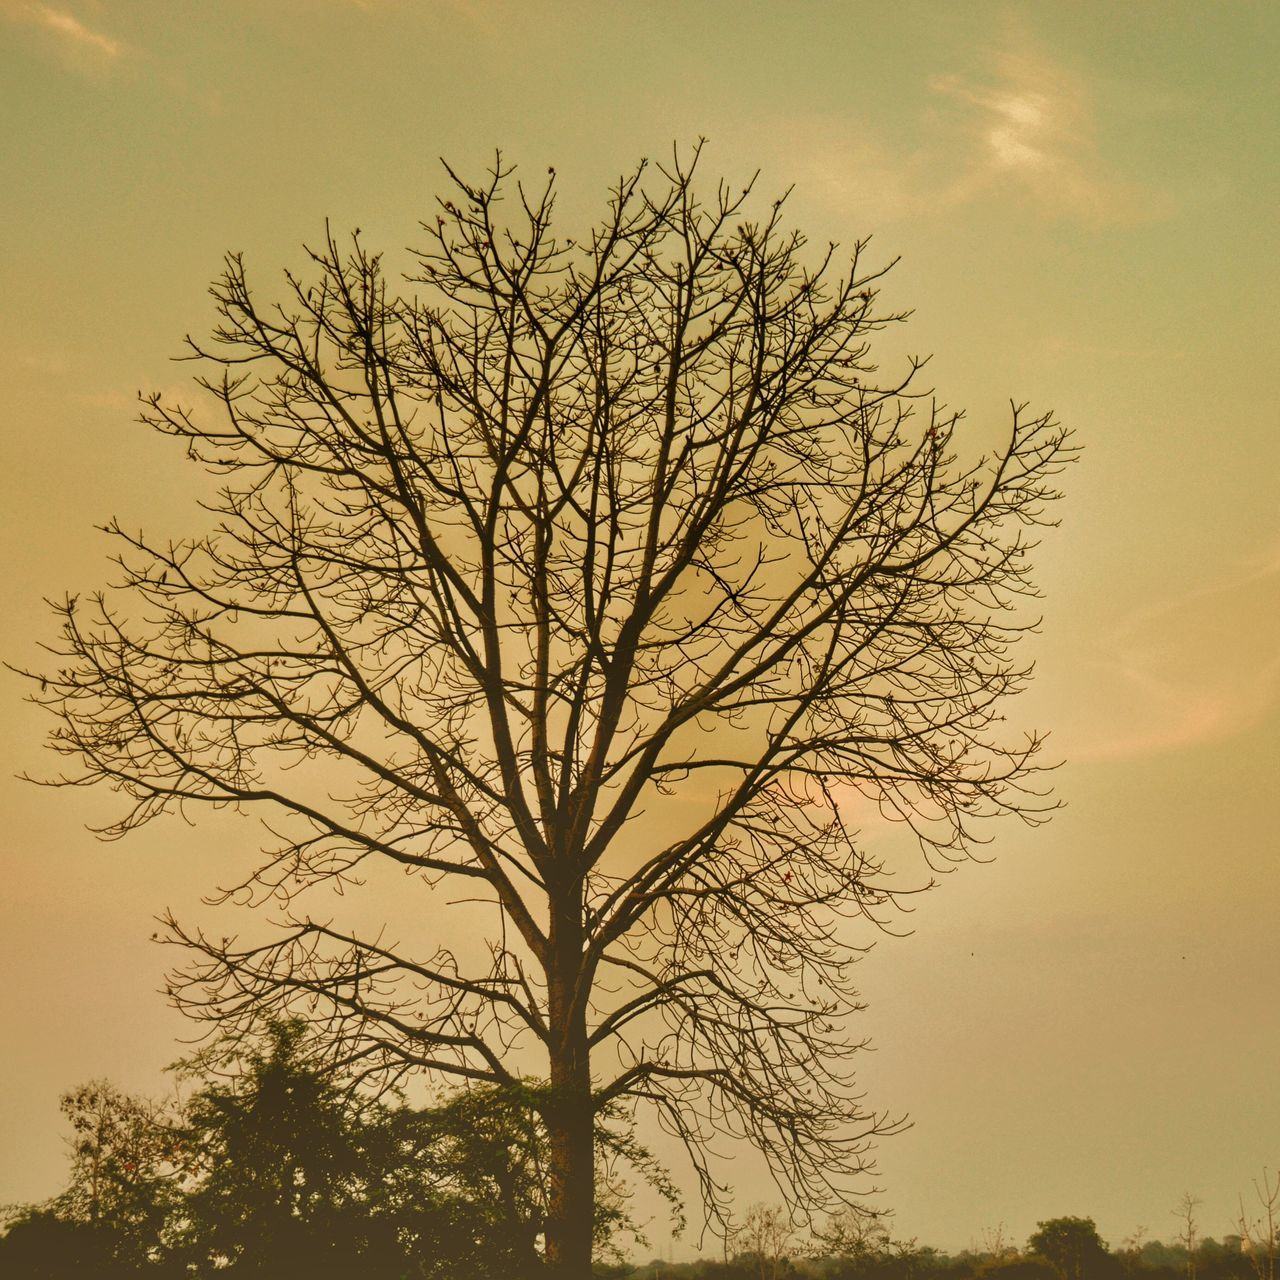 tree, tranquility, branch, bare tree, nature, beauty in nature, sky, lone, tranquil scene, sunset, outdoors, no people, scenics, day